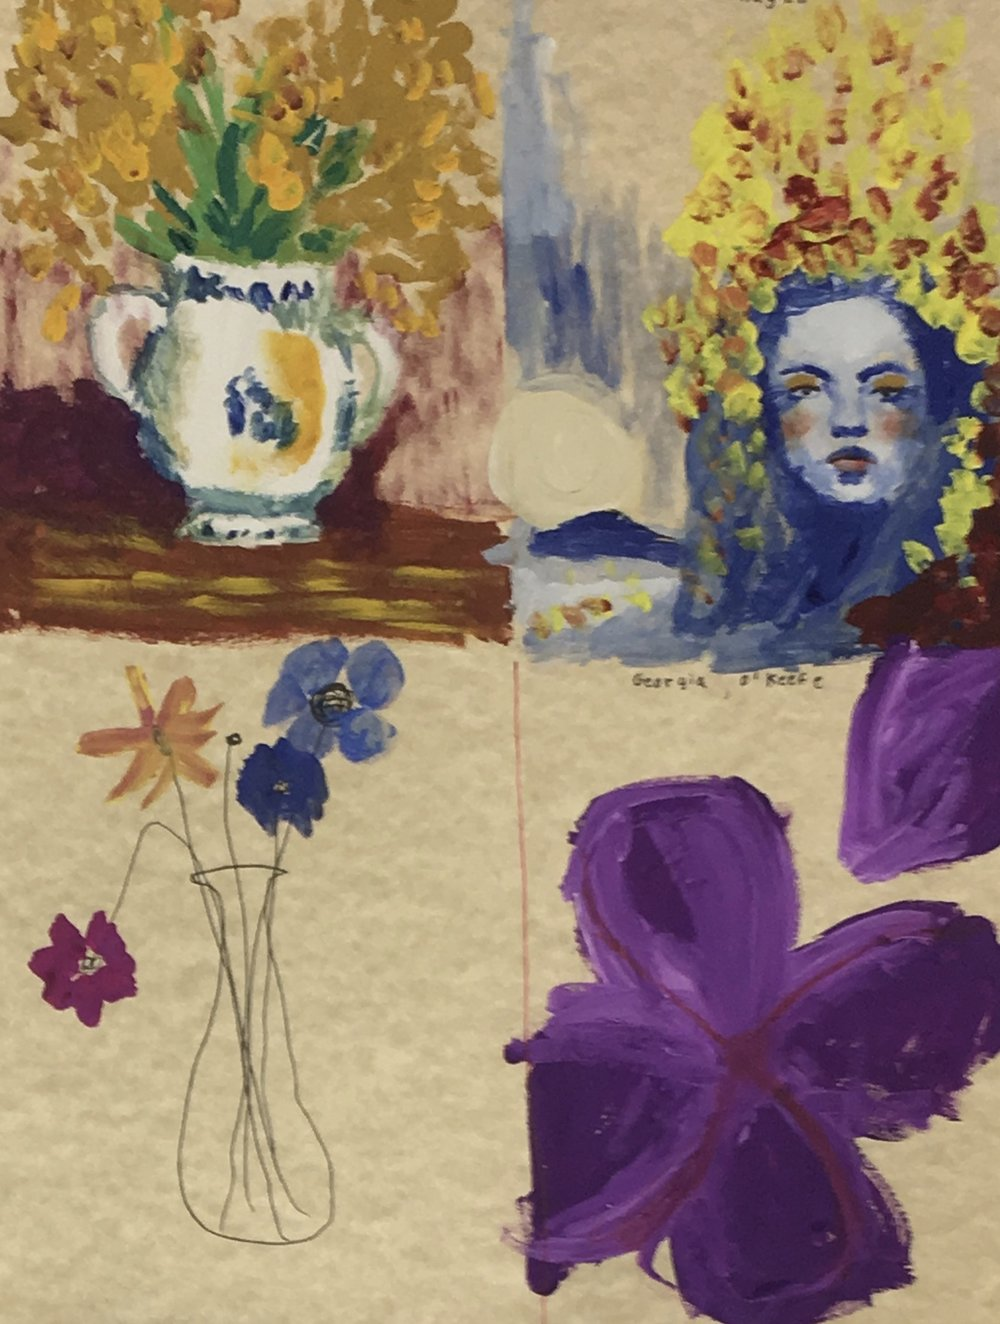 Student sketches - This student's sketches are not quite complete, but demonstrate the general ideas being considered for her final artwork.